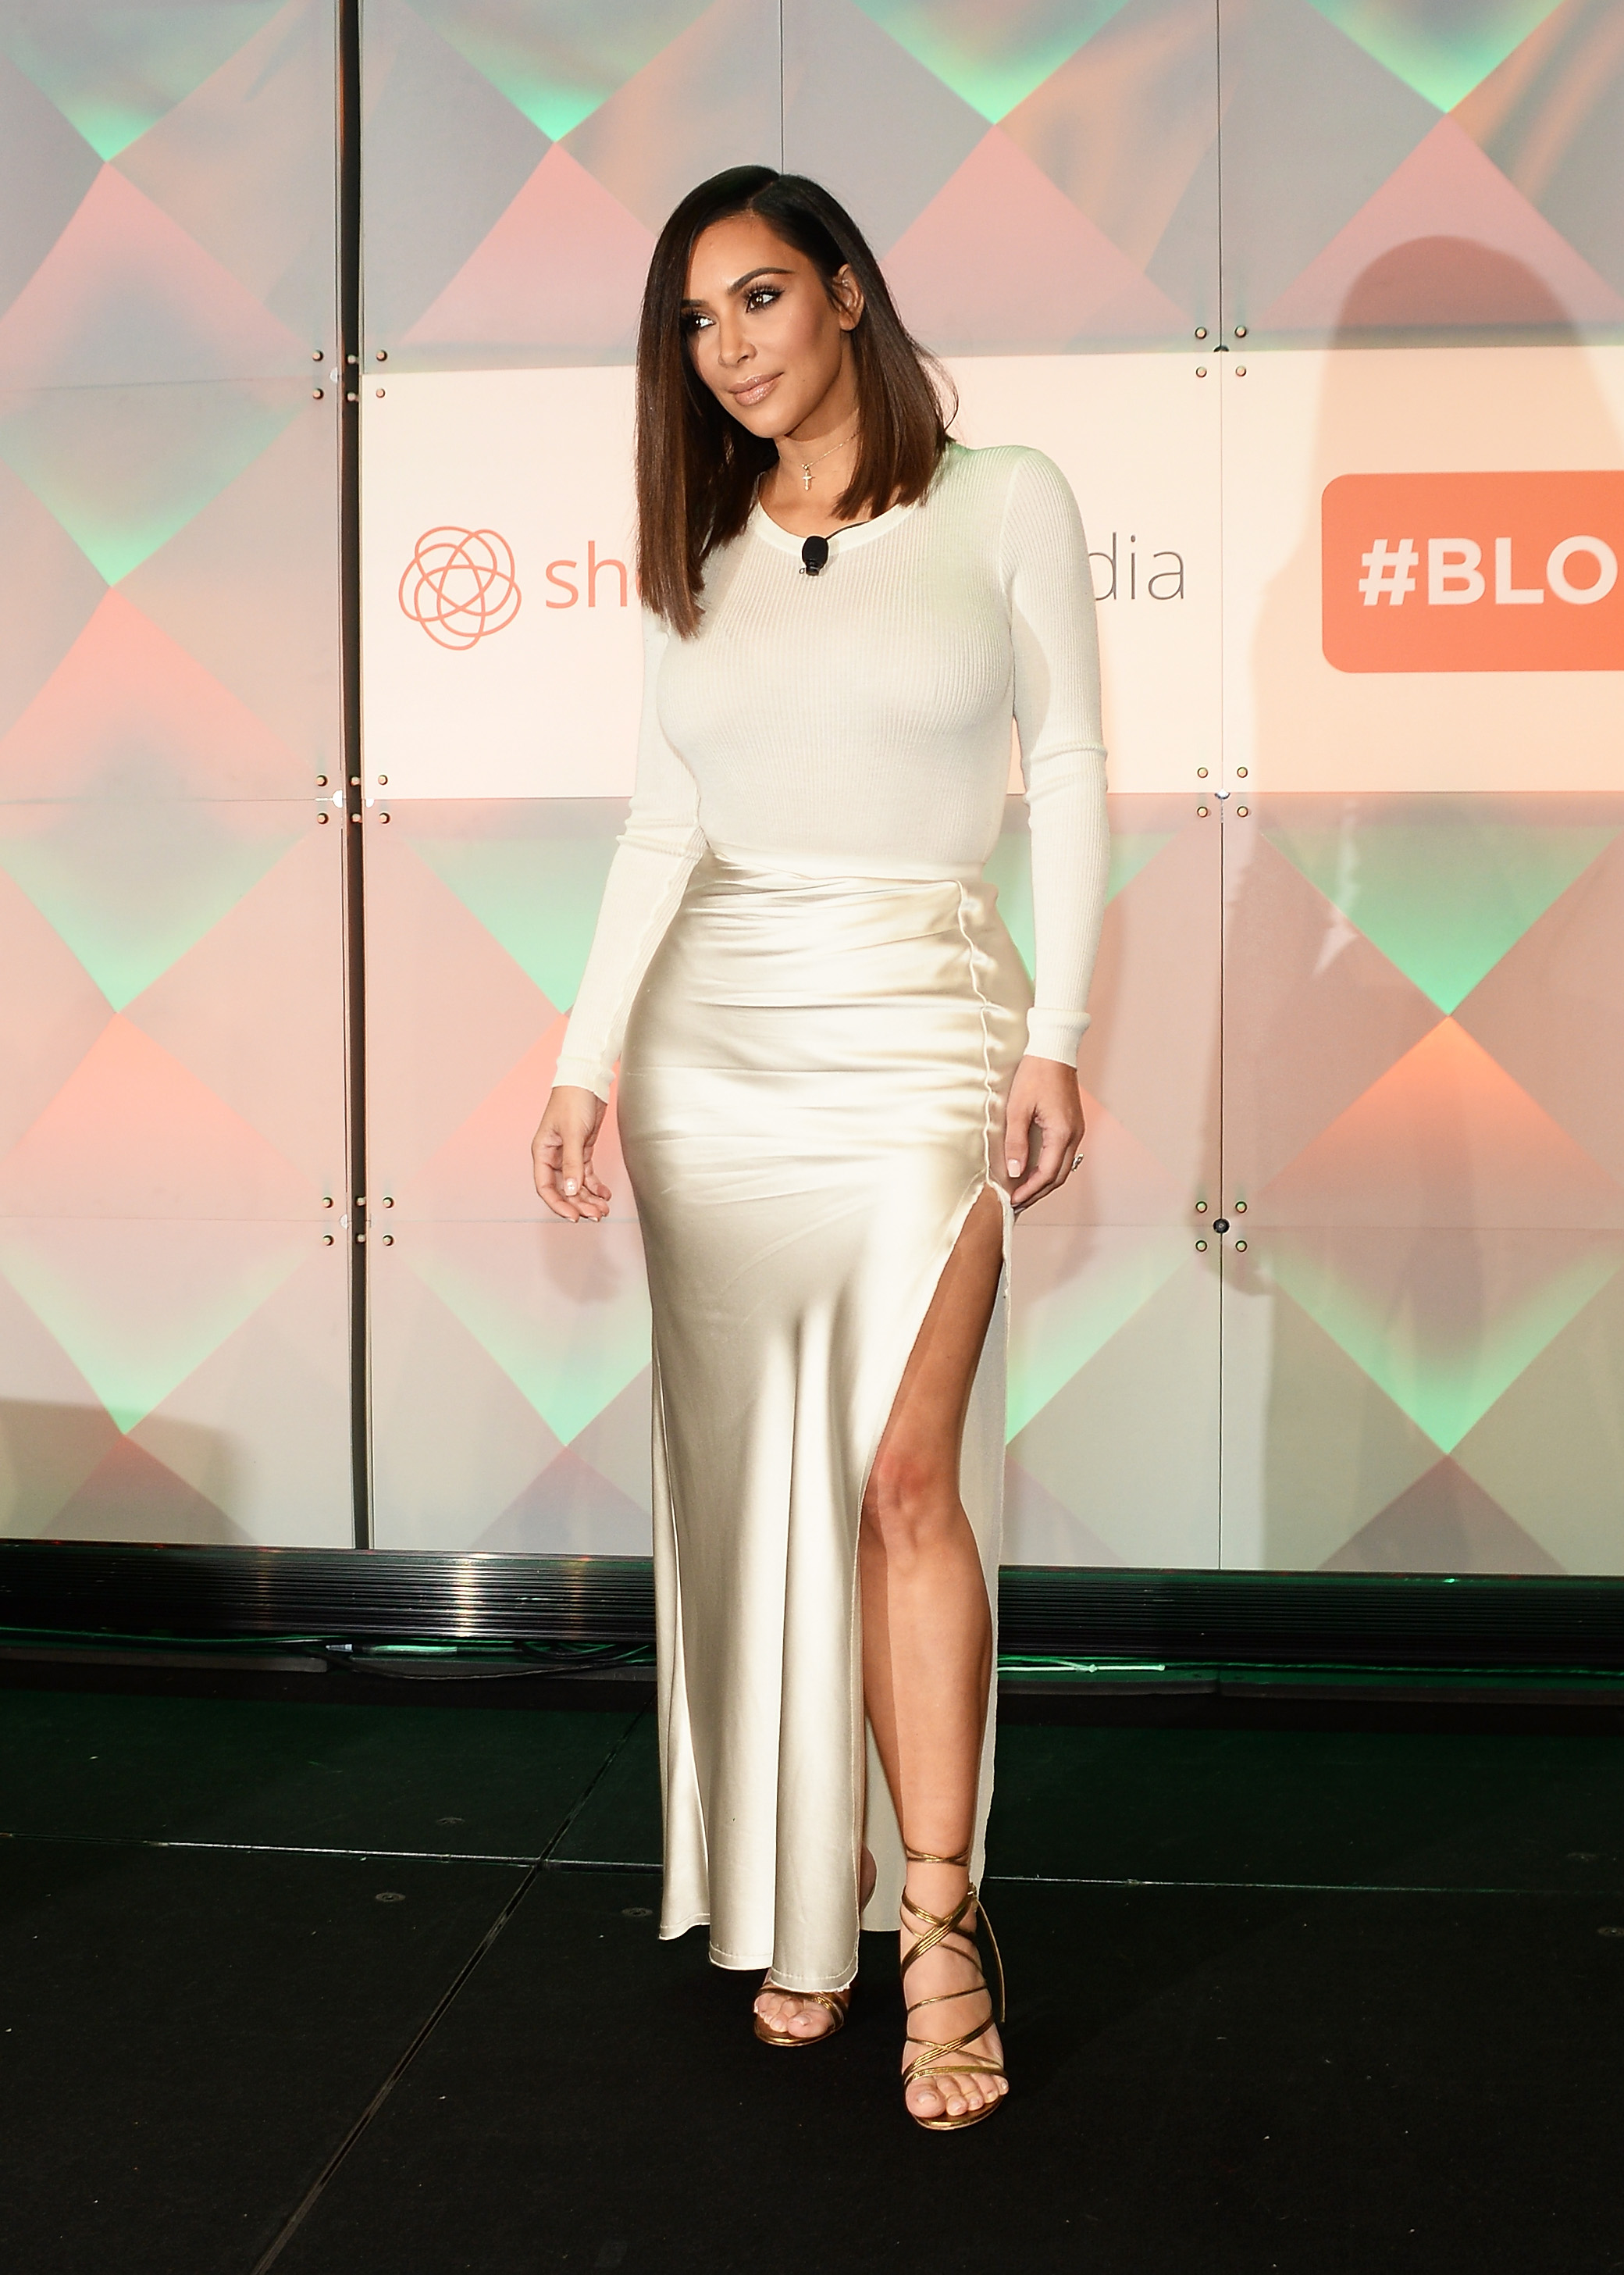 kim kardashian just broke all the fashion rules and wore a